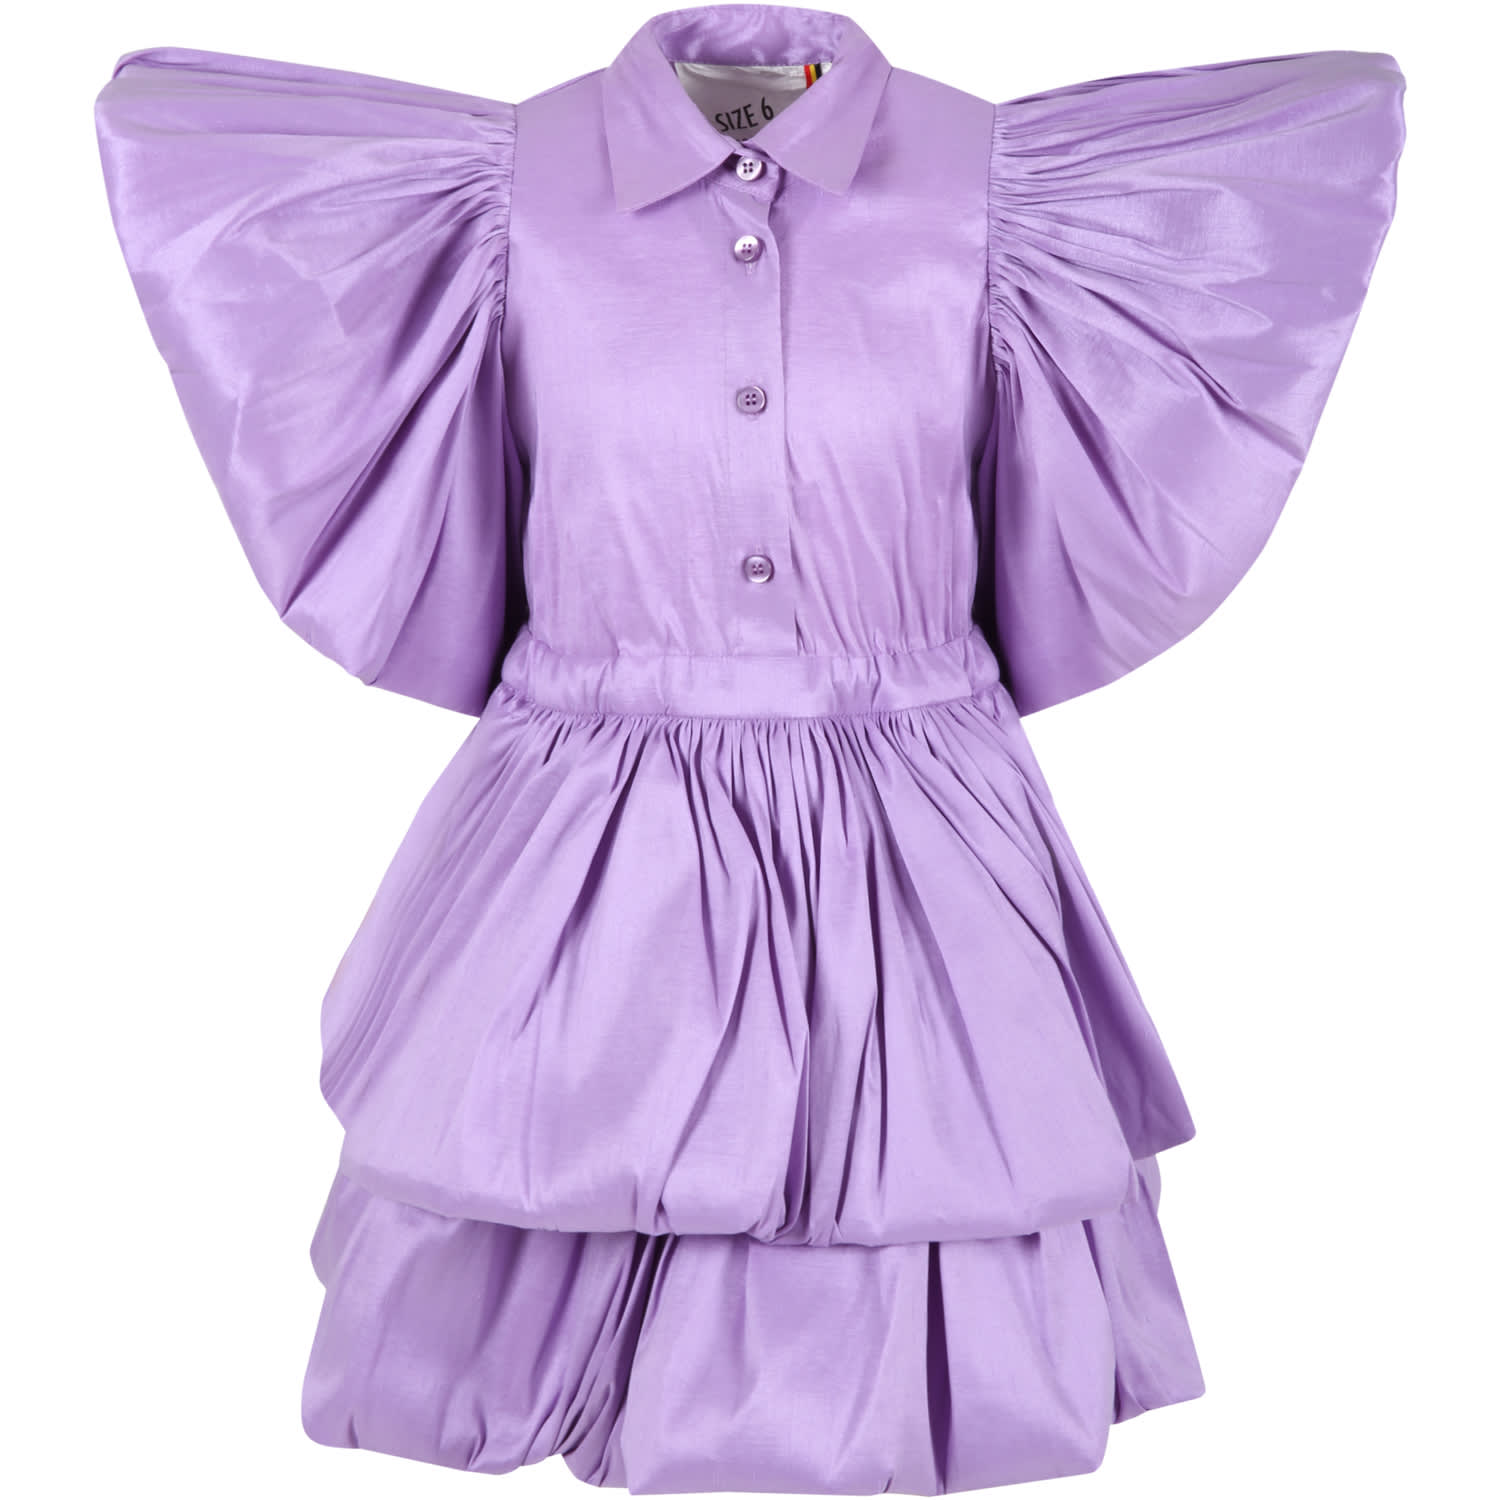 Lilac Dress For Girl With Ruffle